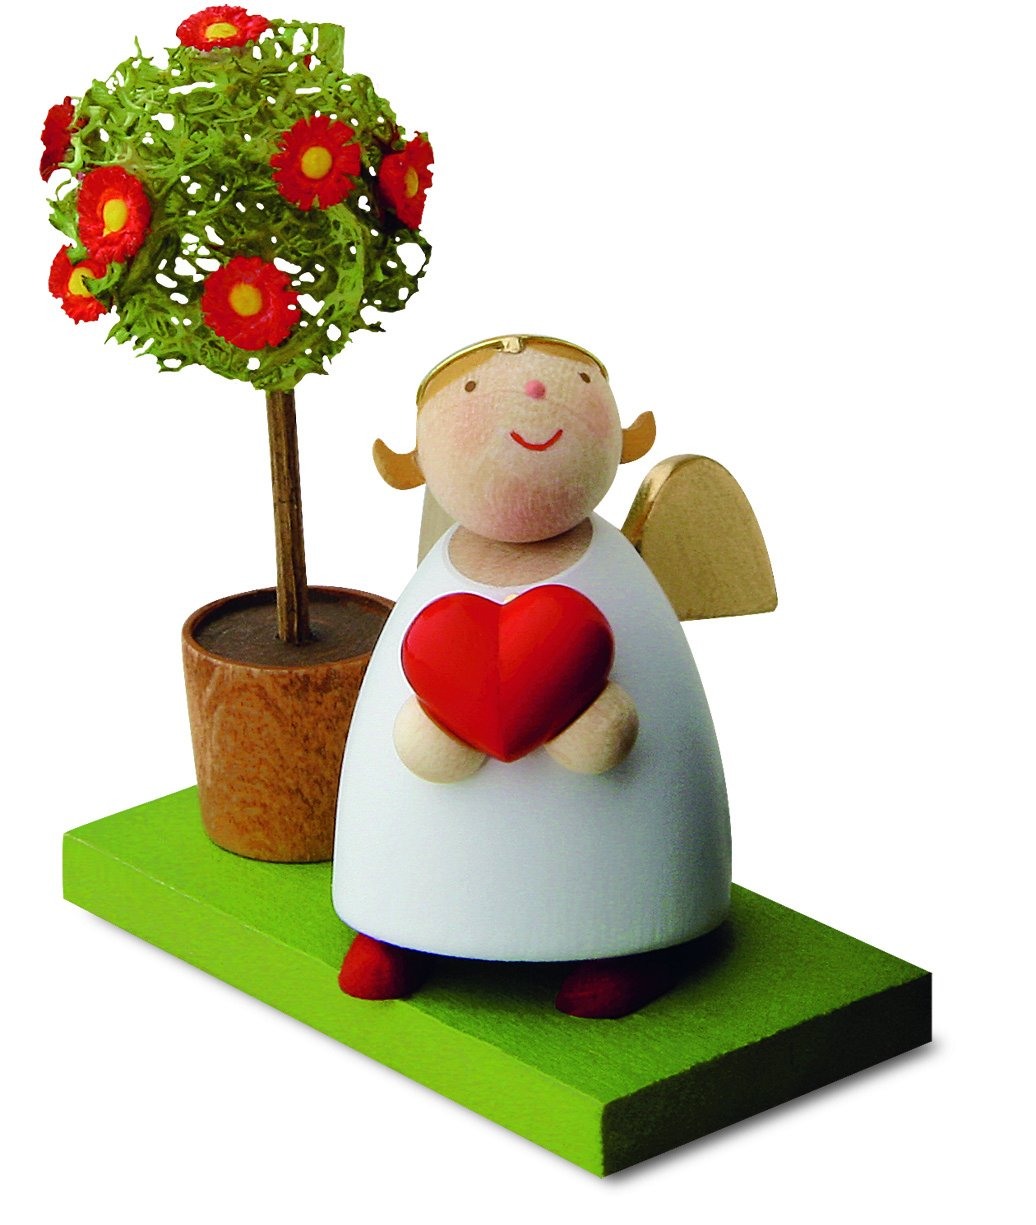 Little Angel Figurine - Guardian Angel with Love Heart and Little Tree